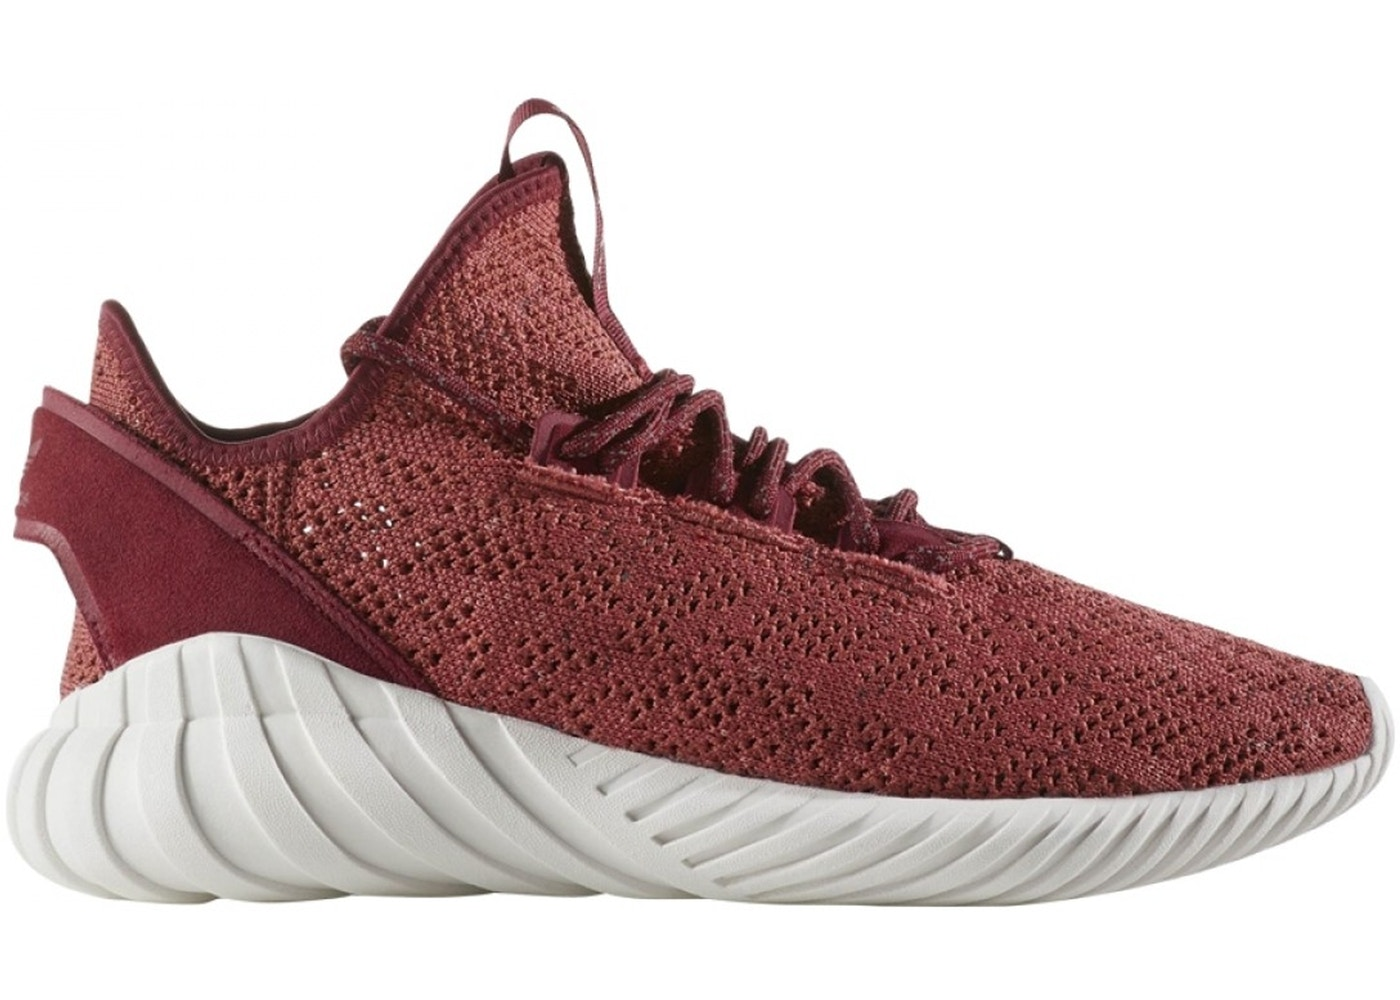 アディダス ADIDAS スニーカー 【 TUBULAR DOOM SOCK MYSTERY RED COLLEGIATE BURGUNDY CRYSTAL WHITE 】 メンズ